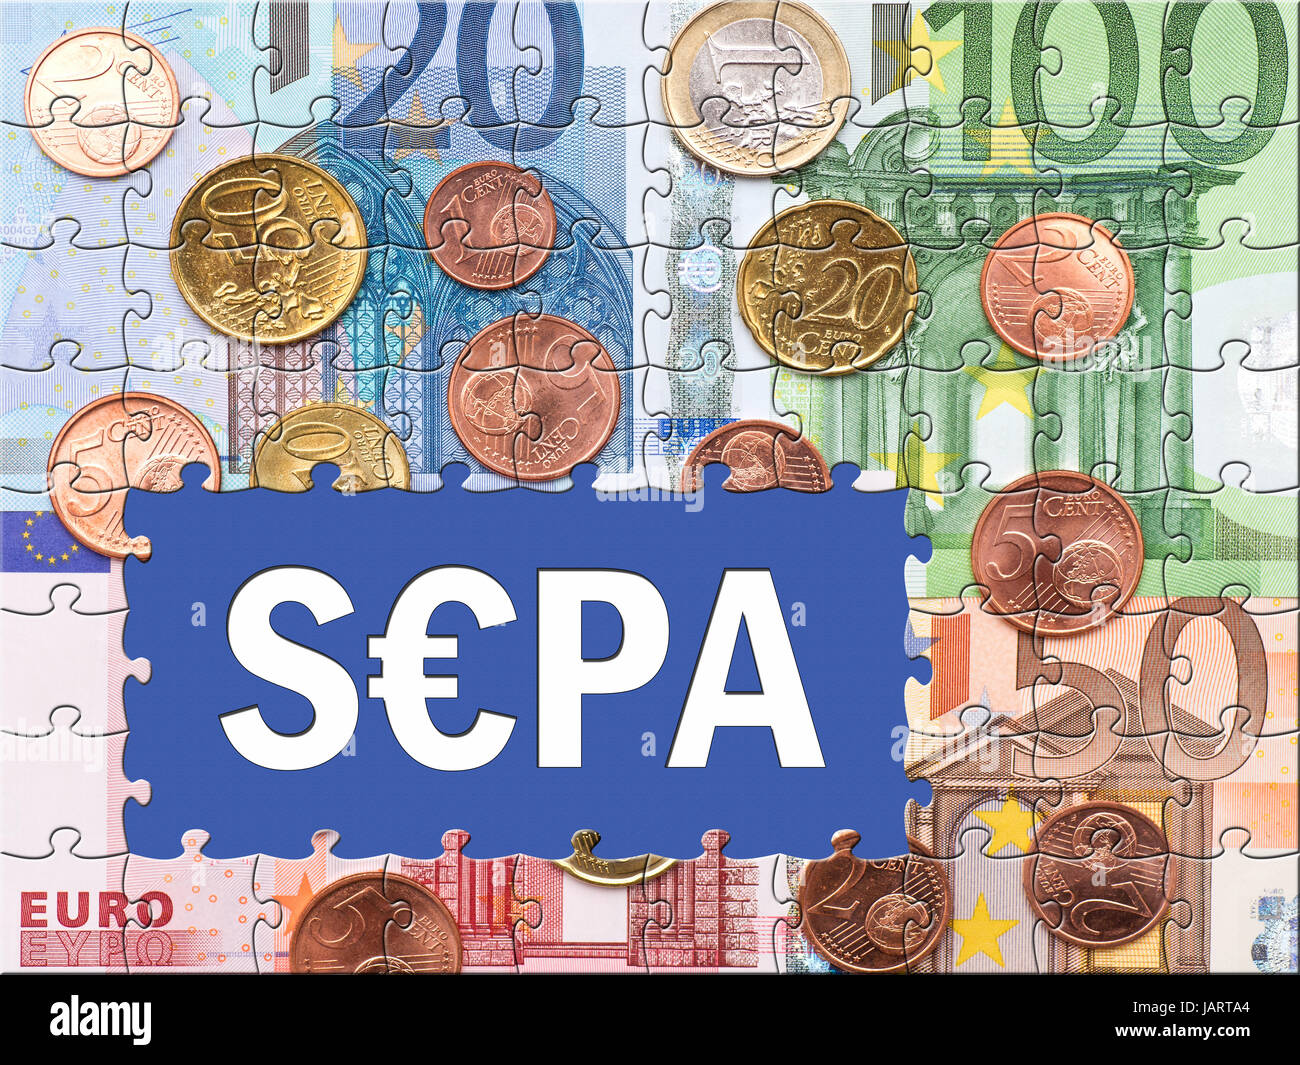 SEPA - Single Euro Payments Area - Stock Image